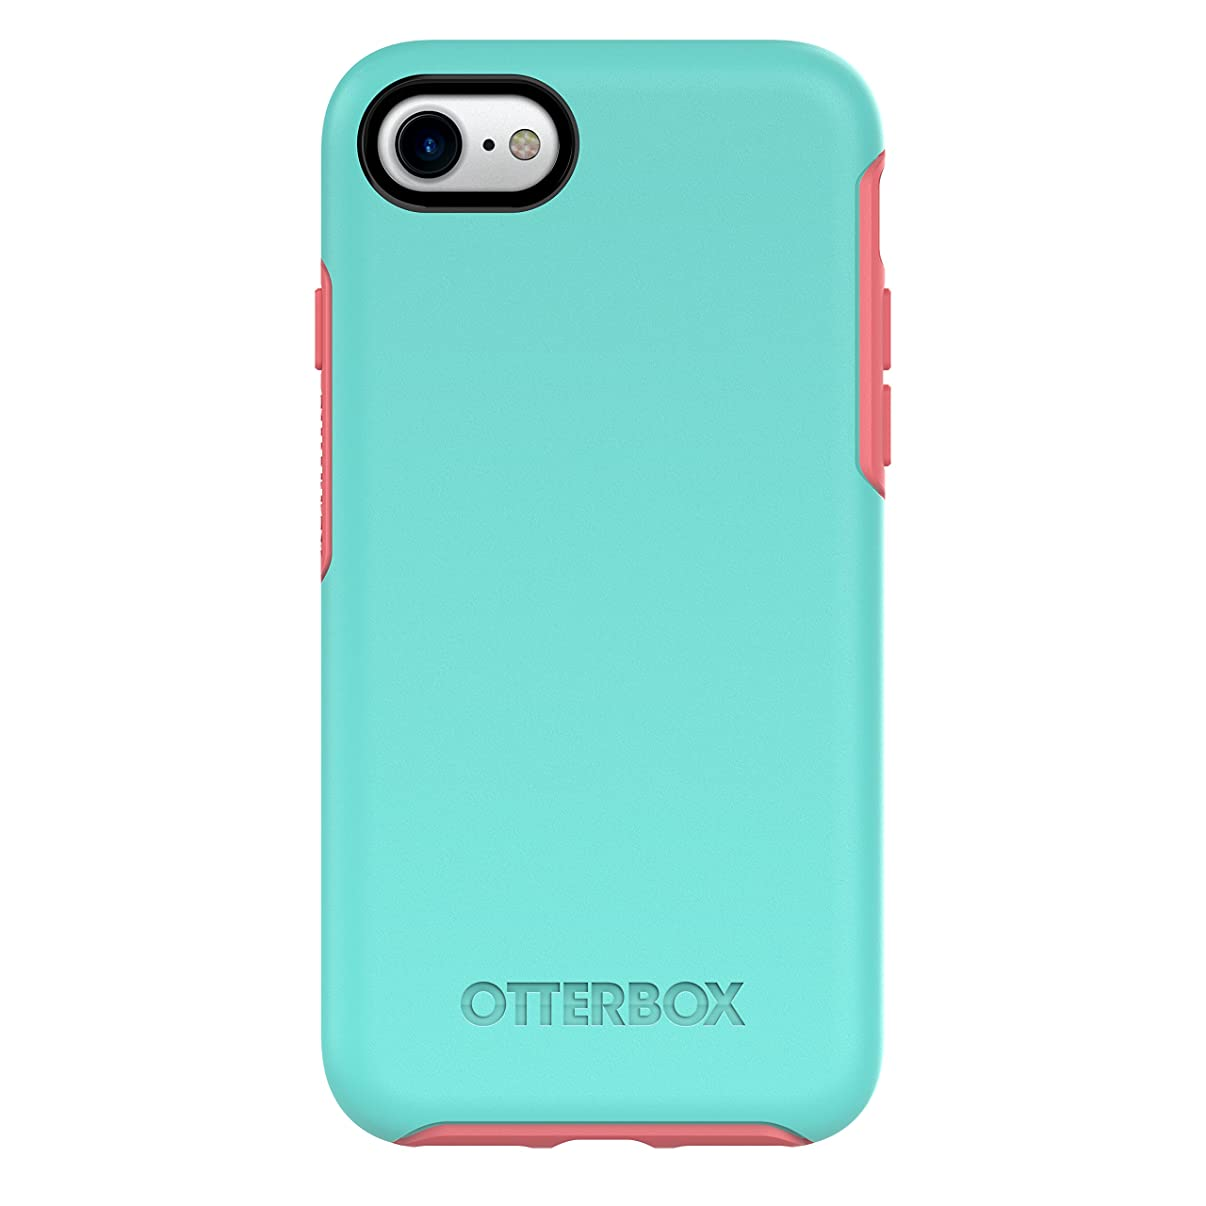 OtterBox SYMMETRY SERIES Case for iPhone 8 & iPhone 7 (NOT Plus) - Retail Packaging - CANDY SHOP (AQUA MINT/CANDY PINK)